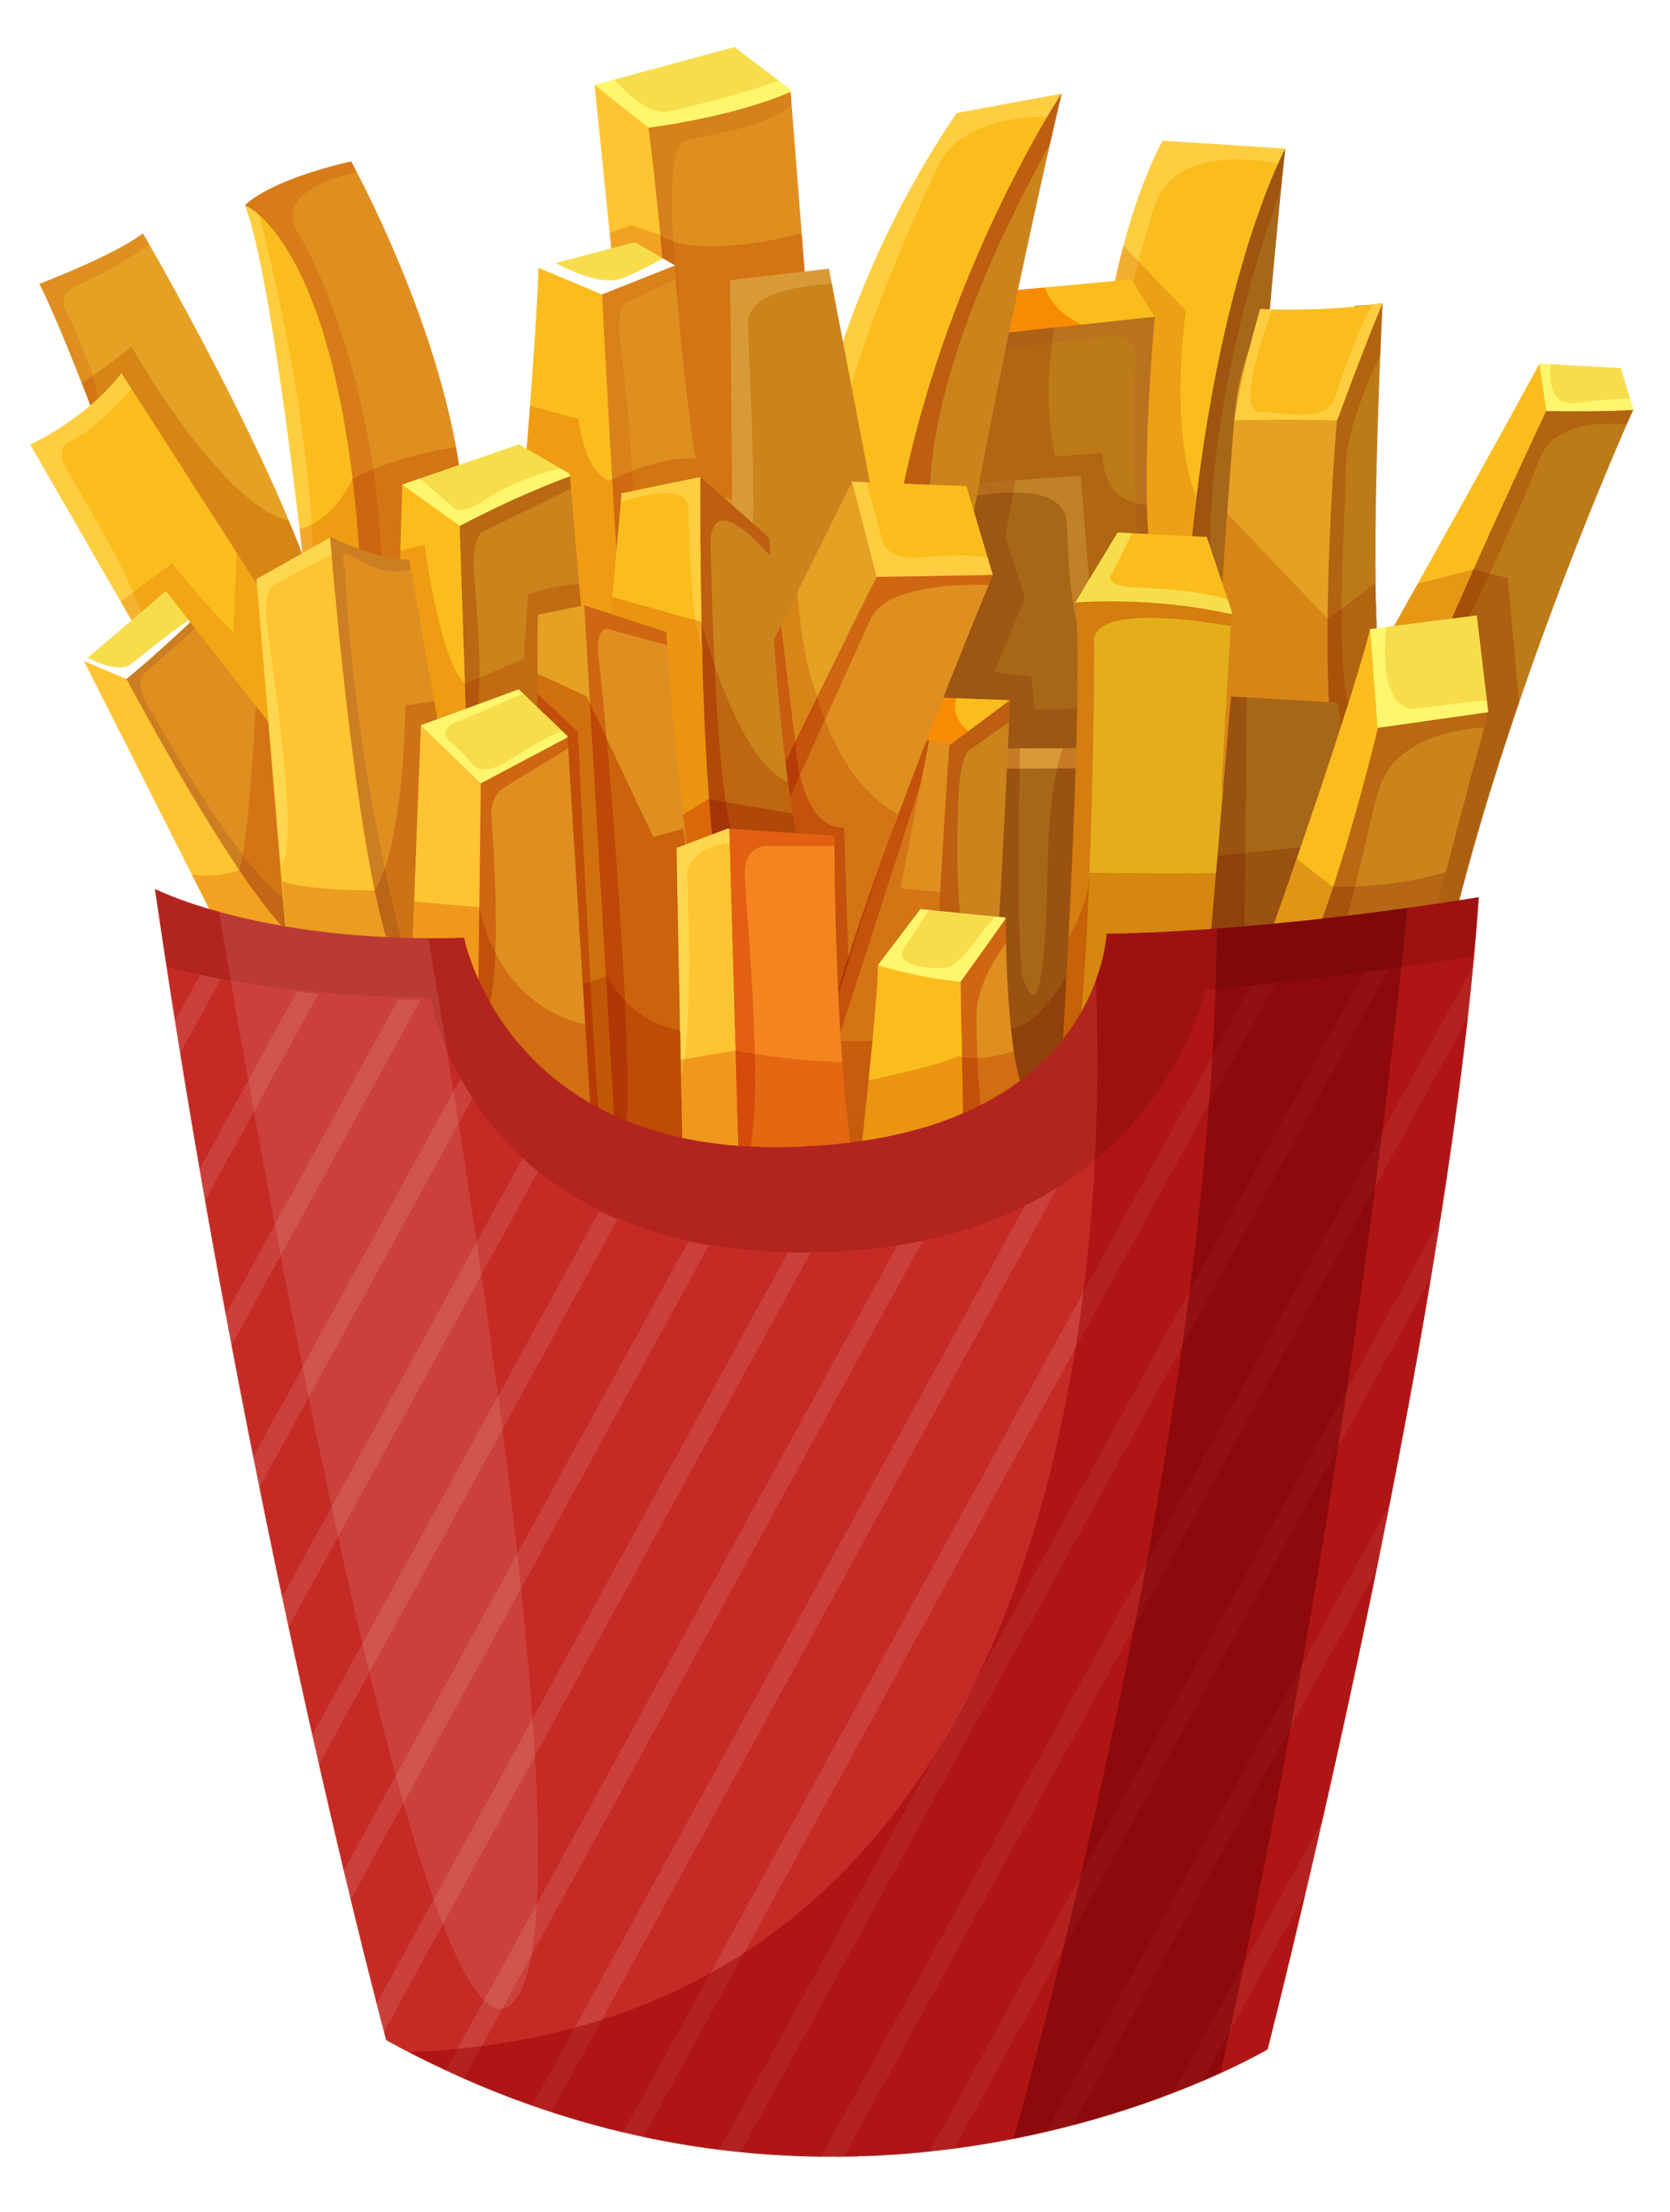 French fry clipart clipart picture freeuse library 72+ Fries Clip Art | ClipartLook picture freeuse library